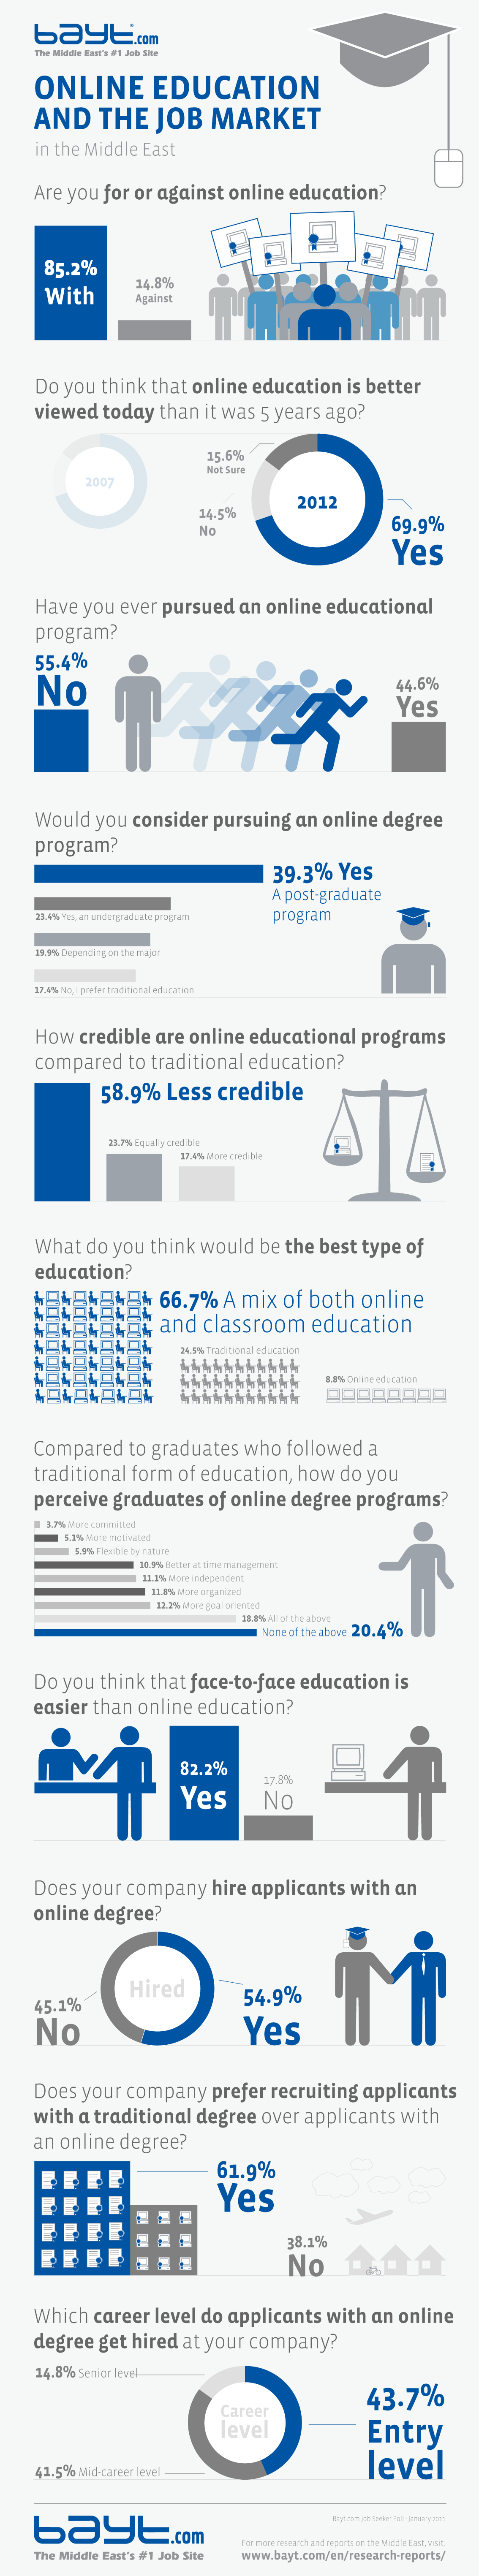 Survey Results: What Do Middle Easterns Think Of Online Education